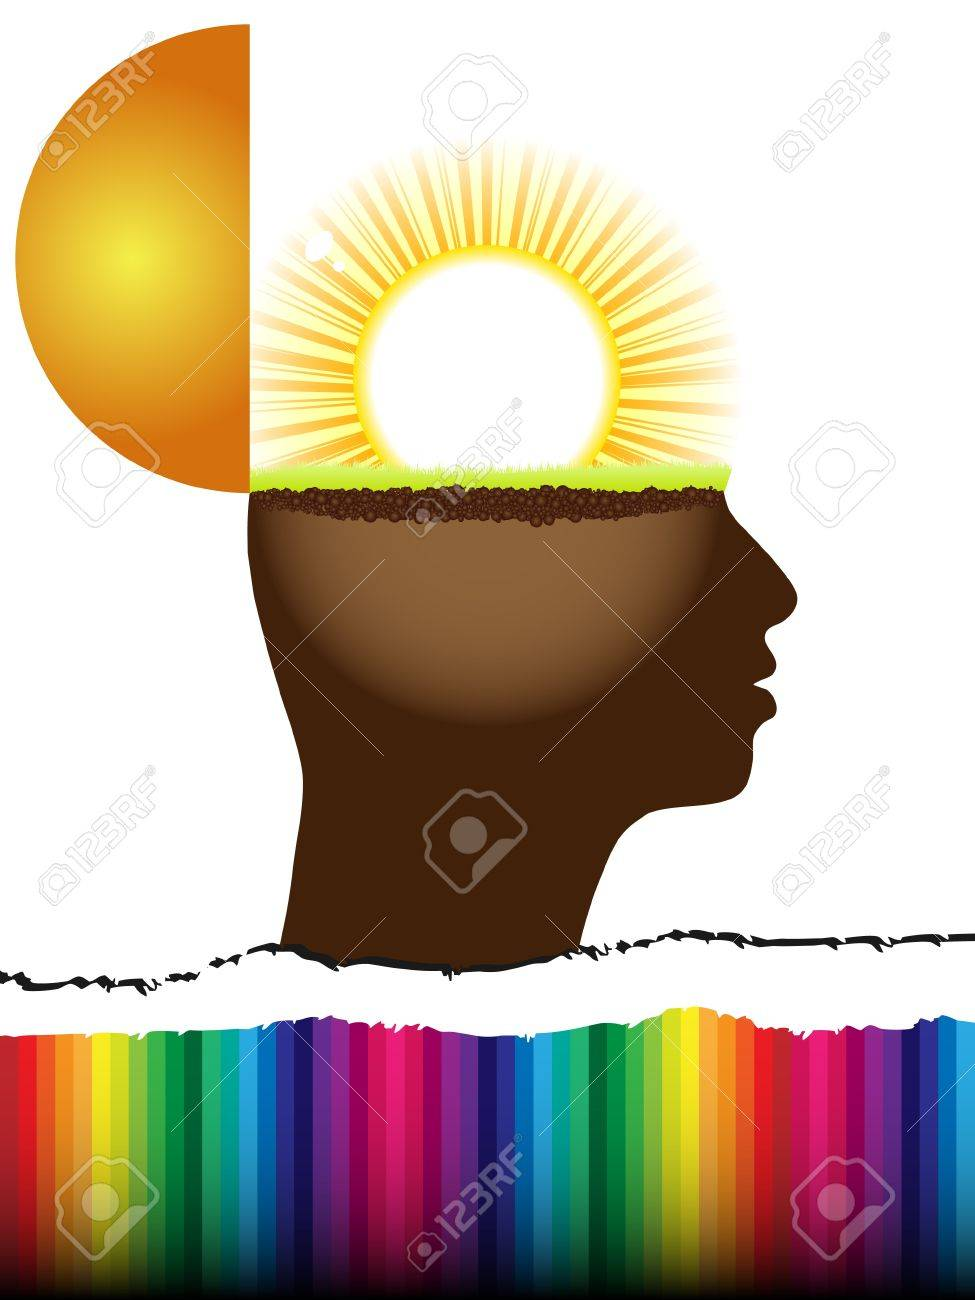 open mind with sun inside Stock Vector - 10288517